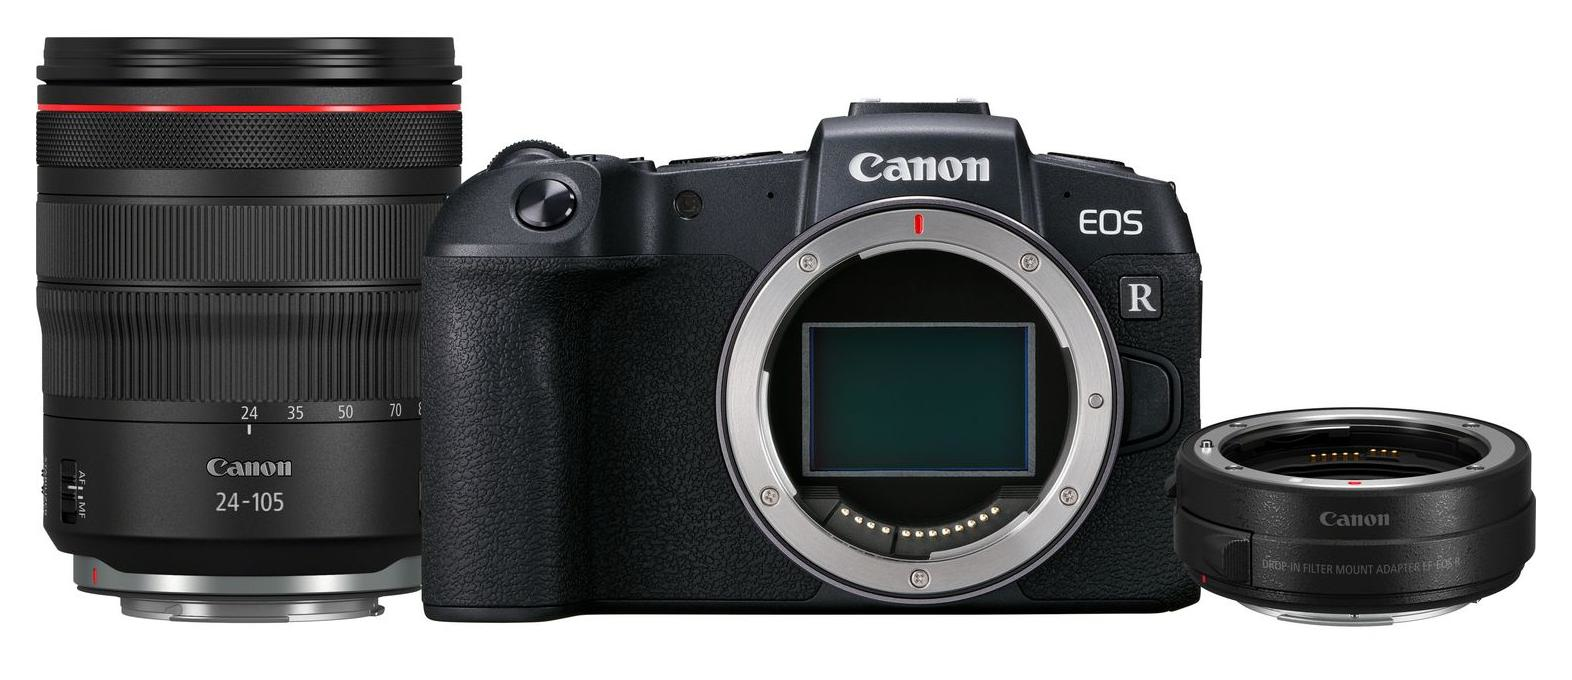 Canon EOS EOS RP Body + RF 24-105mm f/4L IS USM lens + Mount Adapter EF-EOS R für 2.499,00 Euro